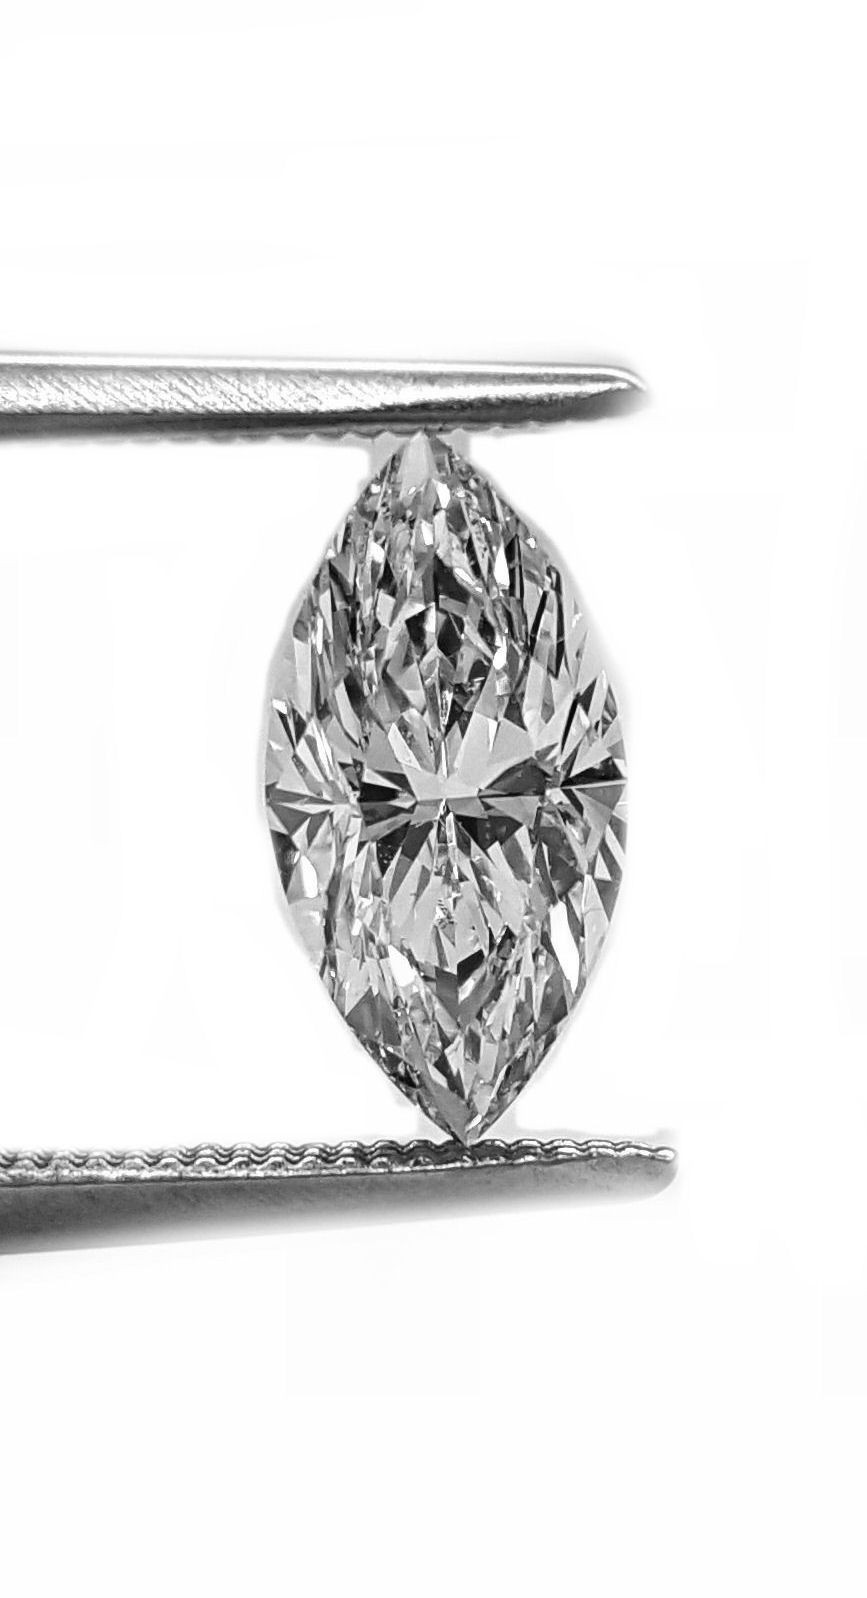 1.02ct. F VS1 Marquise Shaped Diamond EGL-USA certified